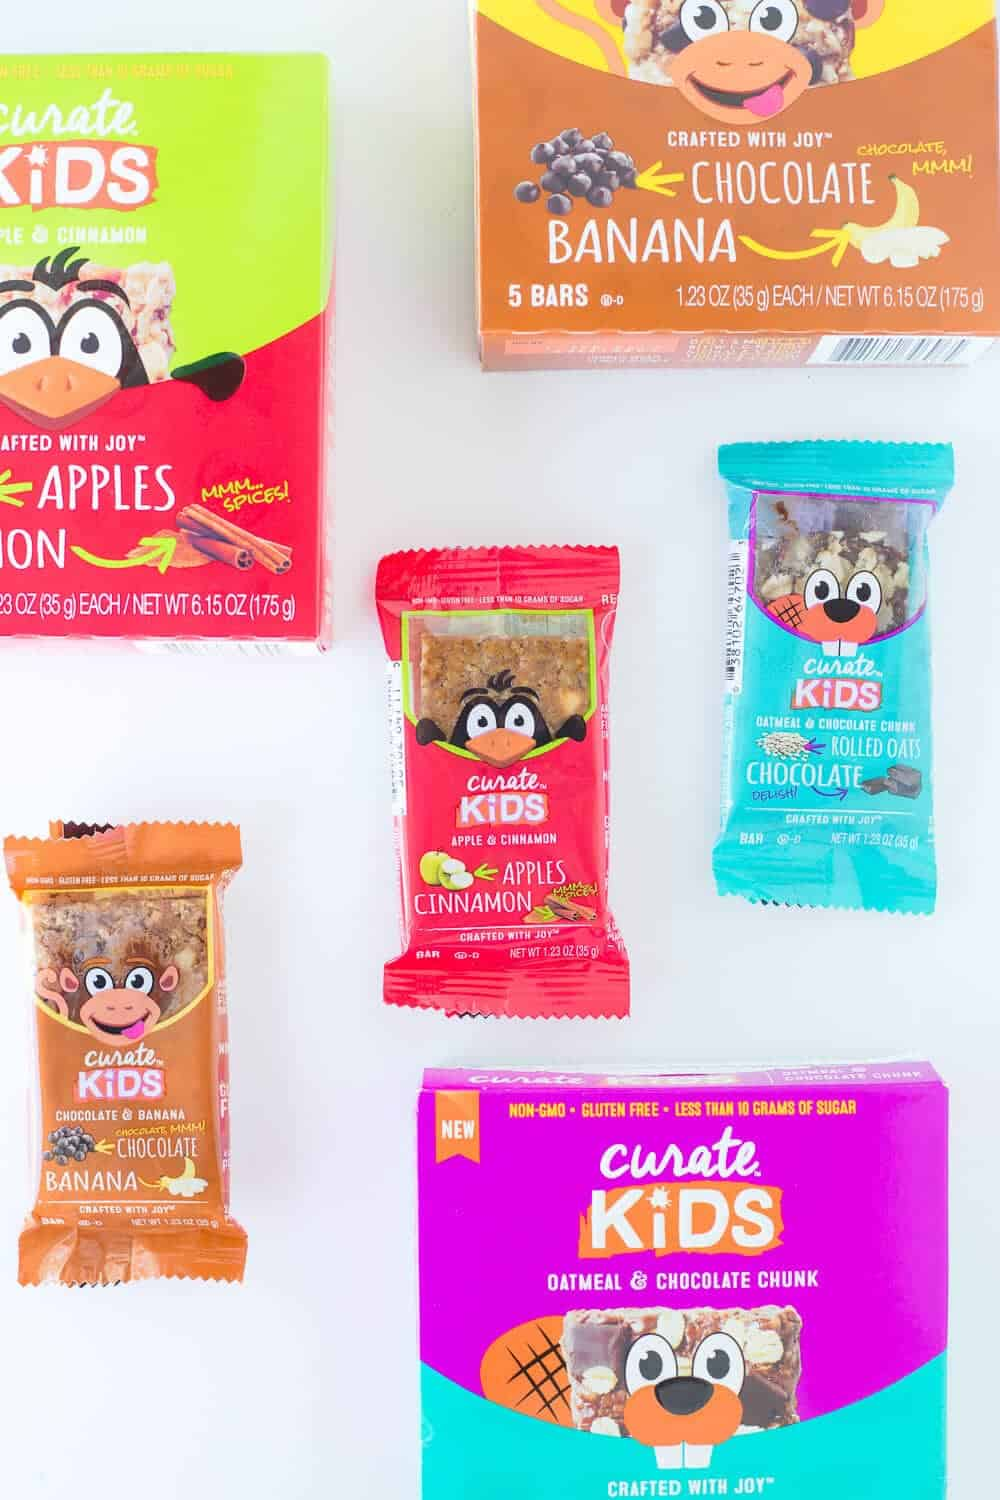 Five Lunchbox Packing Tips... Curate Kids Bars are great to include in lunchboxes